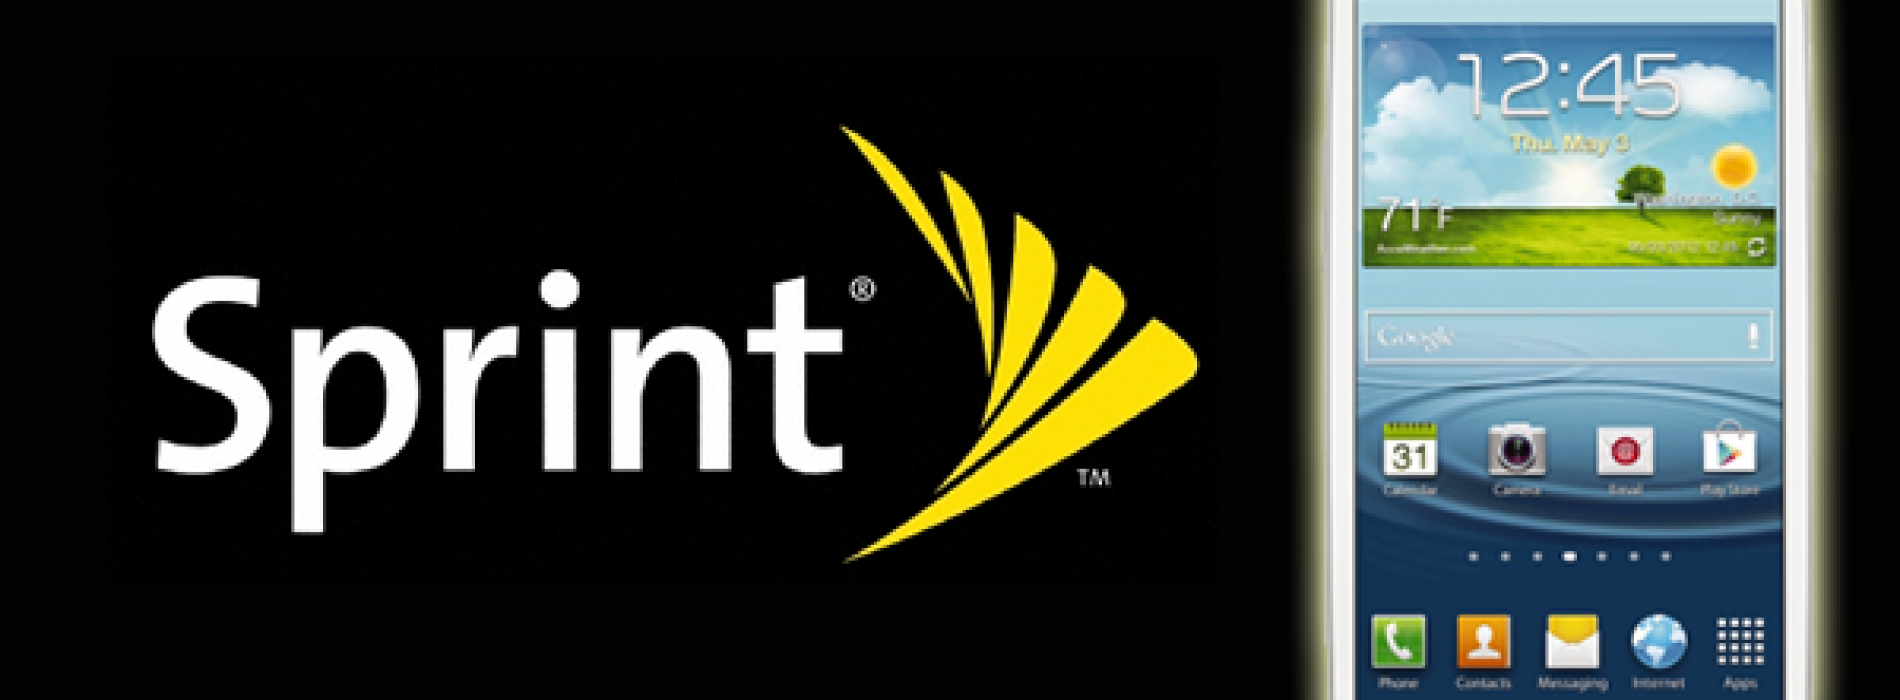 Sprint circles June 21 for Galaxy S III